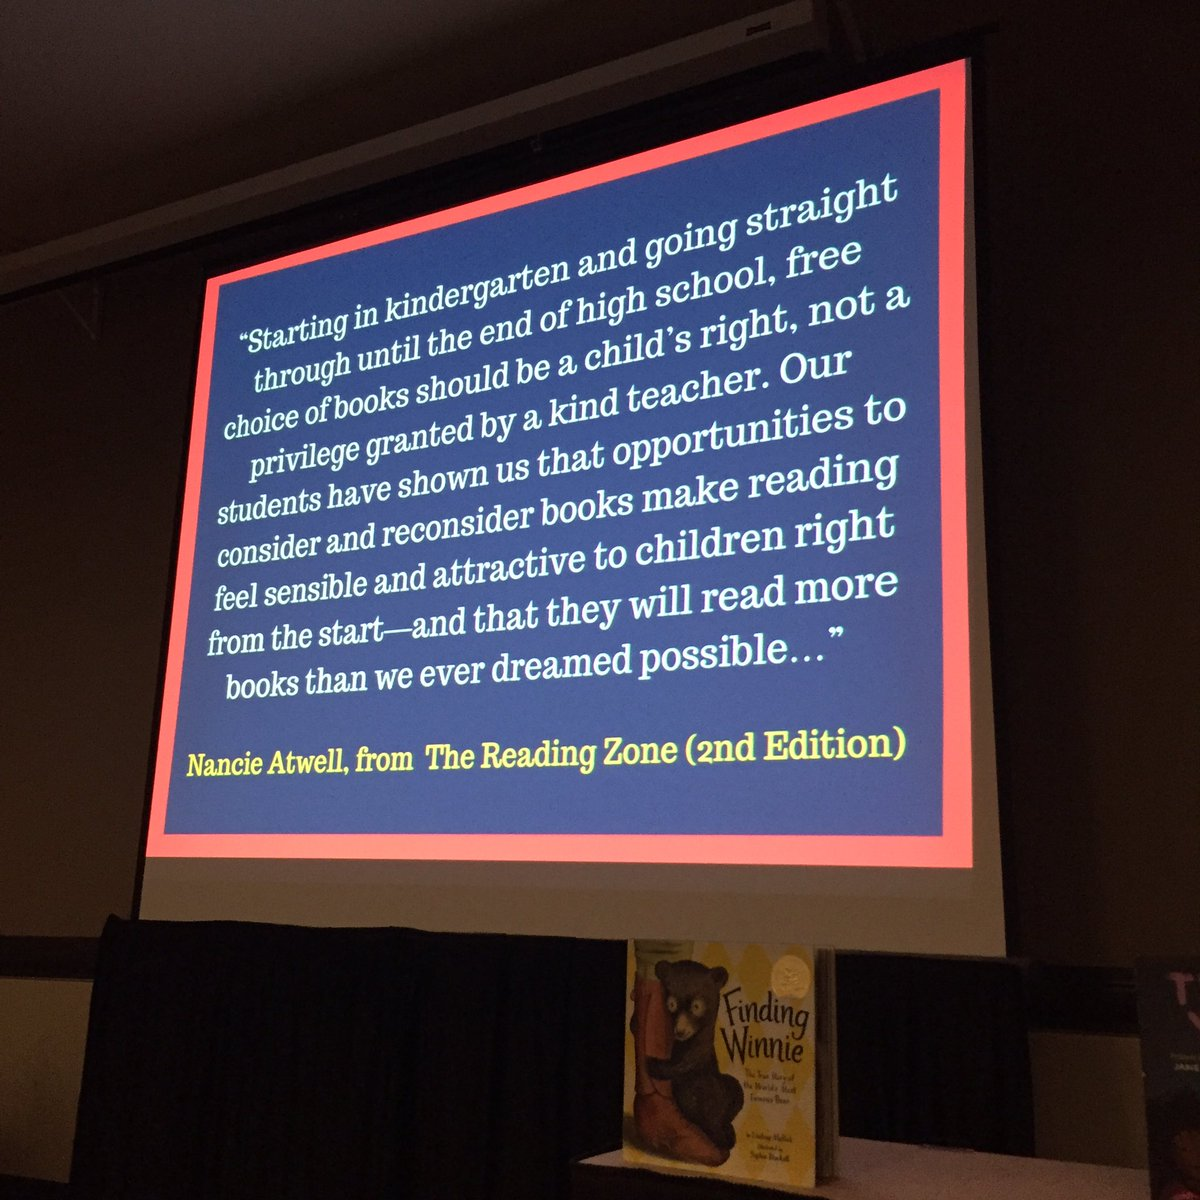 Important words from Nancie Atwell, shared by @MrSchuReads at #IRC2016. https://t.co/5Z9izERCOV